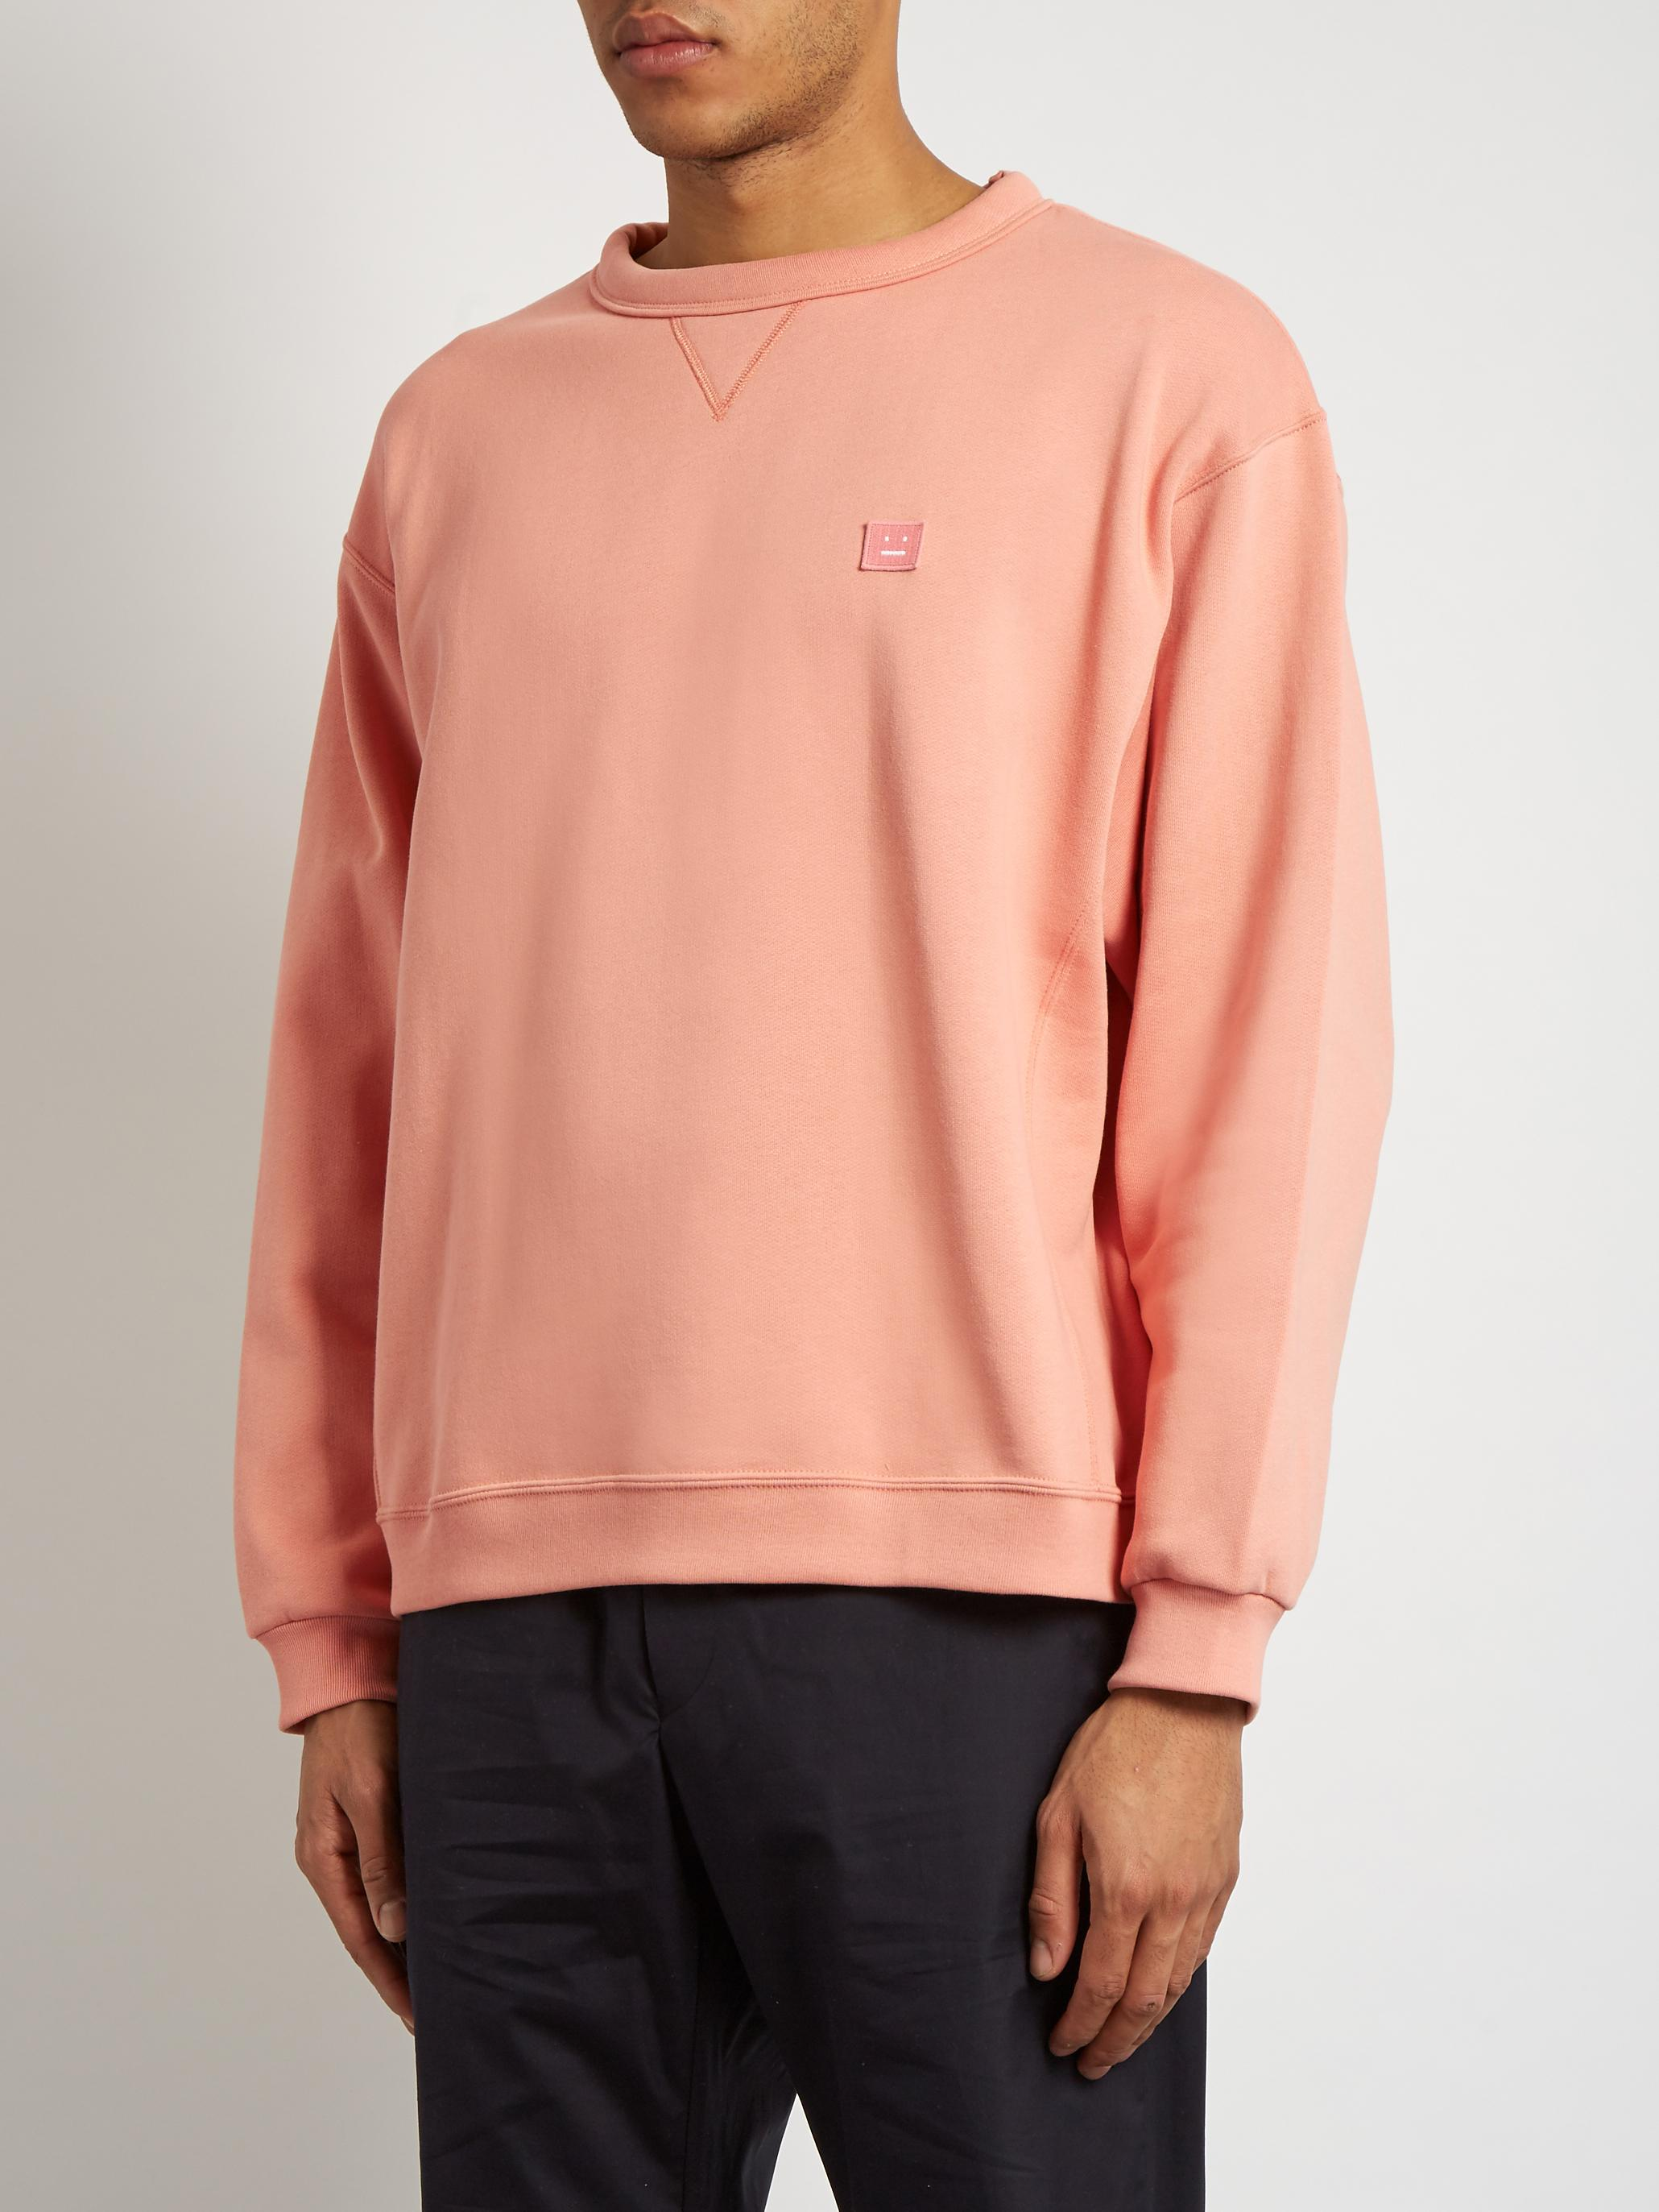 acne studios fint face cotton sweater in pink for men lyst. Black Bedroom Furniture Sets. Home Design Ideas